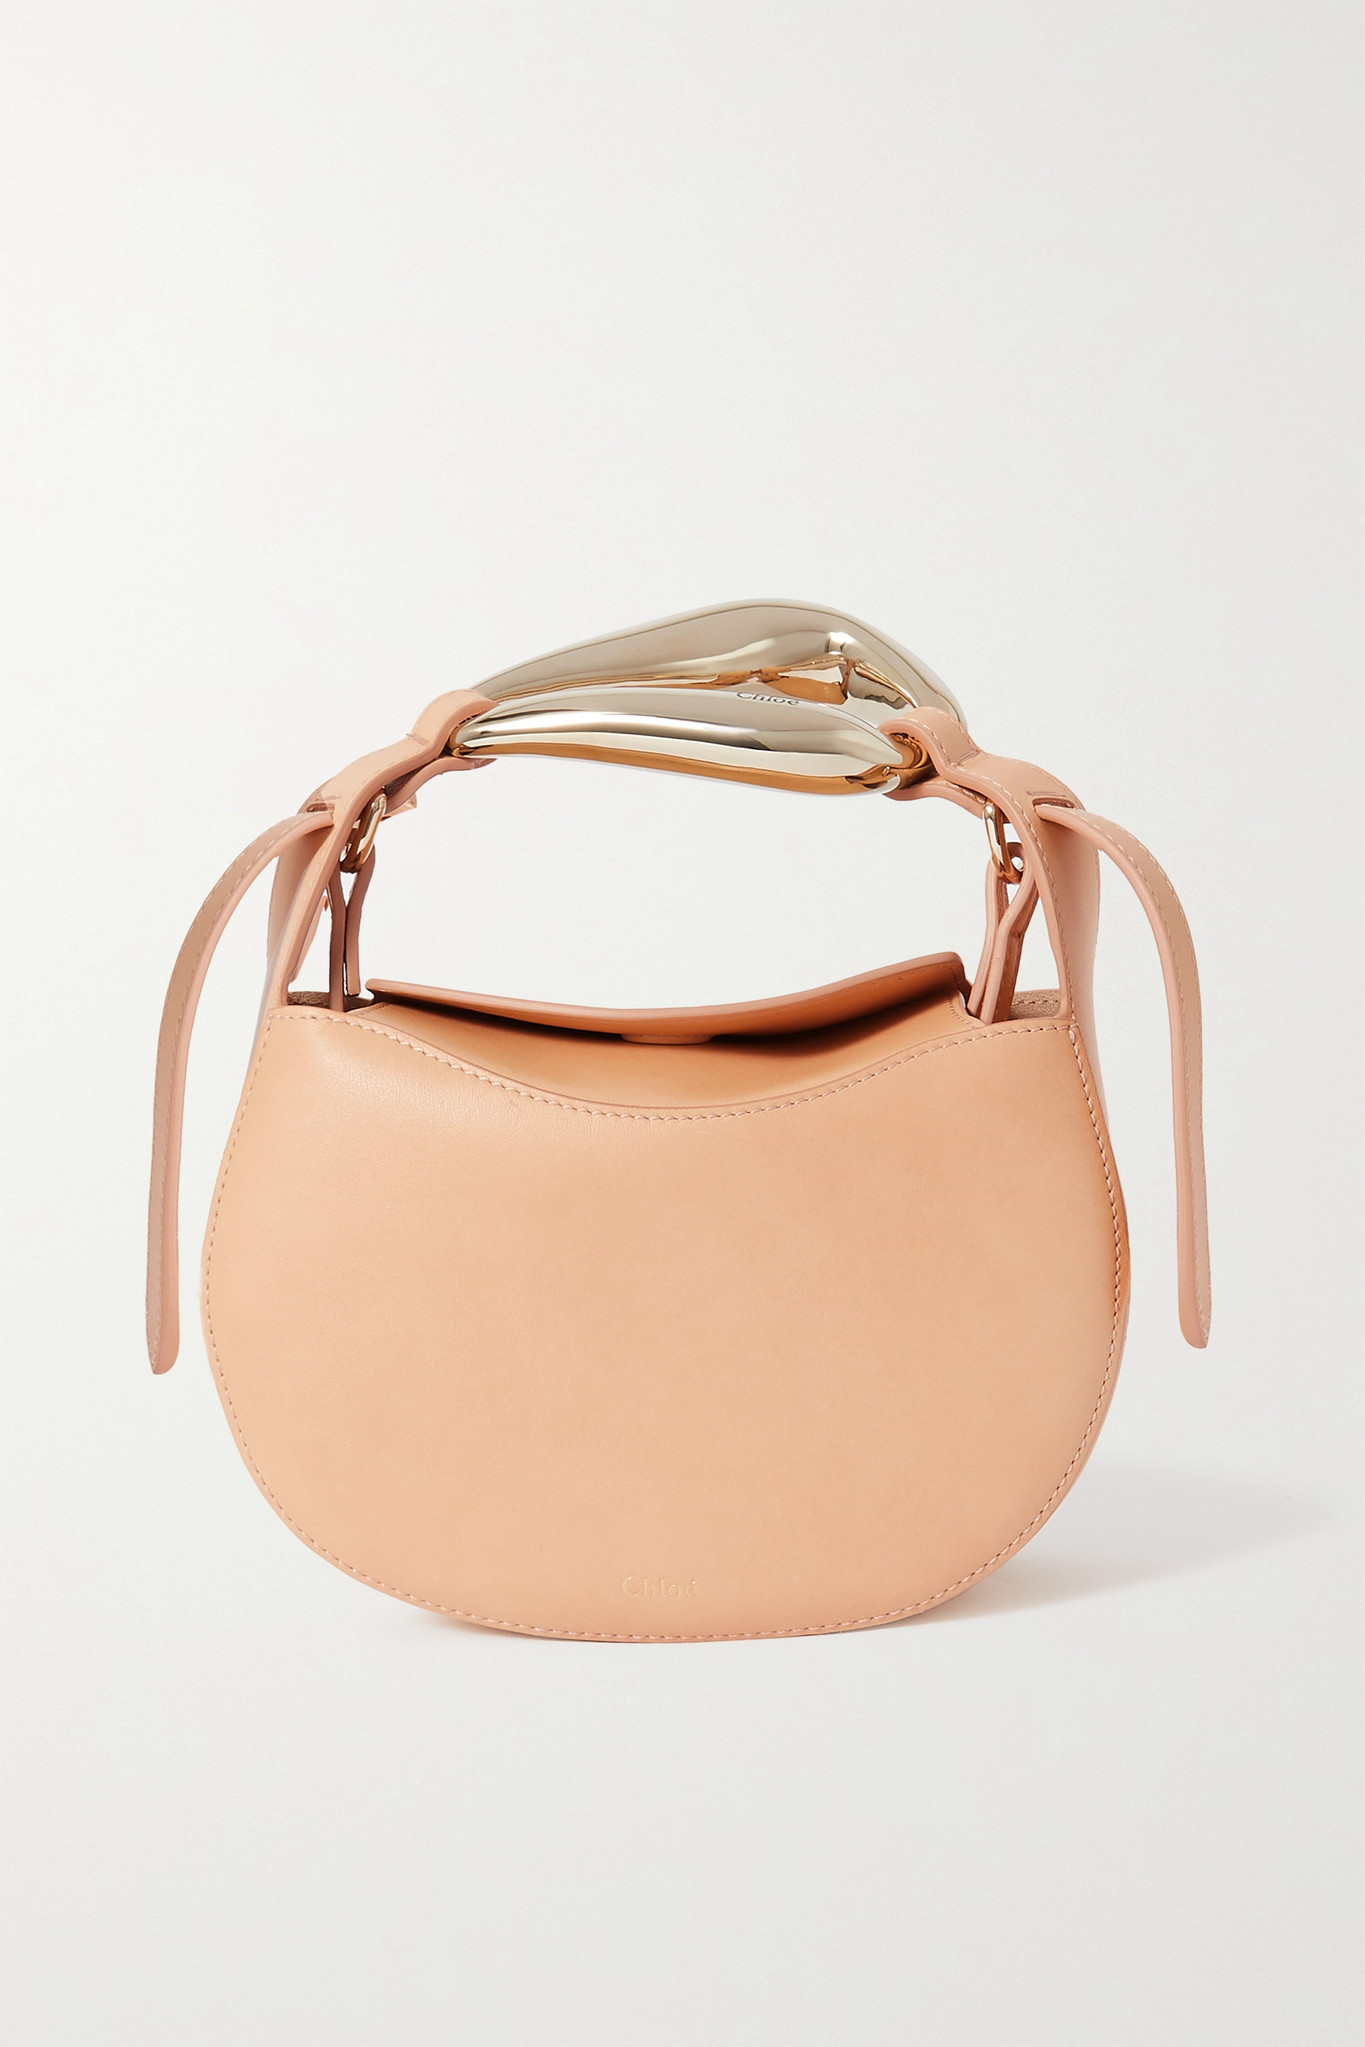 CHLOÉ - Kiss Small Leather Tote - Neutrals - one size